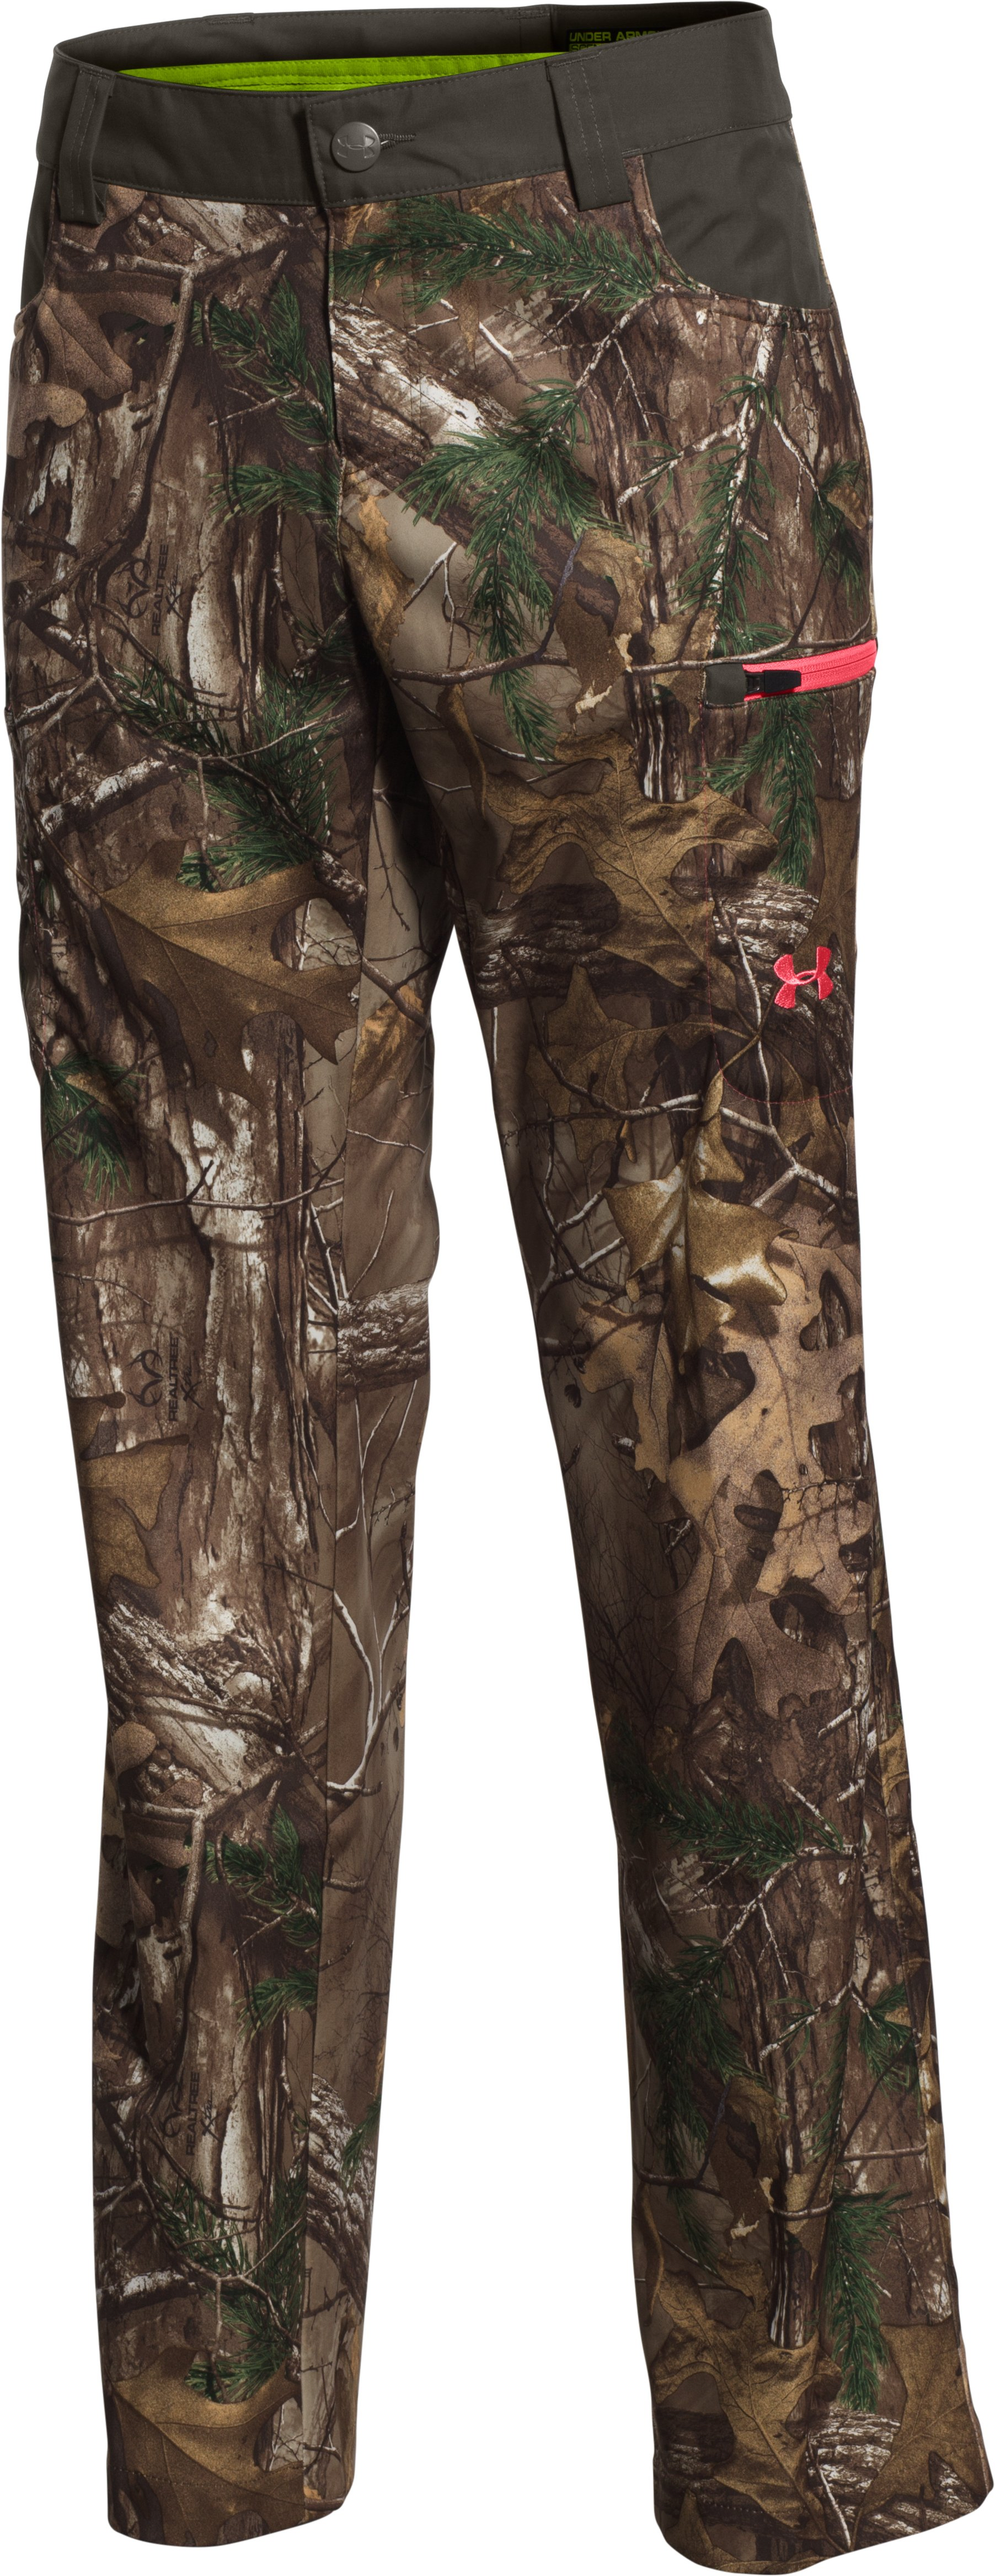 UA Scent Control Early Season Speed Freek Pants, REALTREE AP-XTRA,